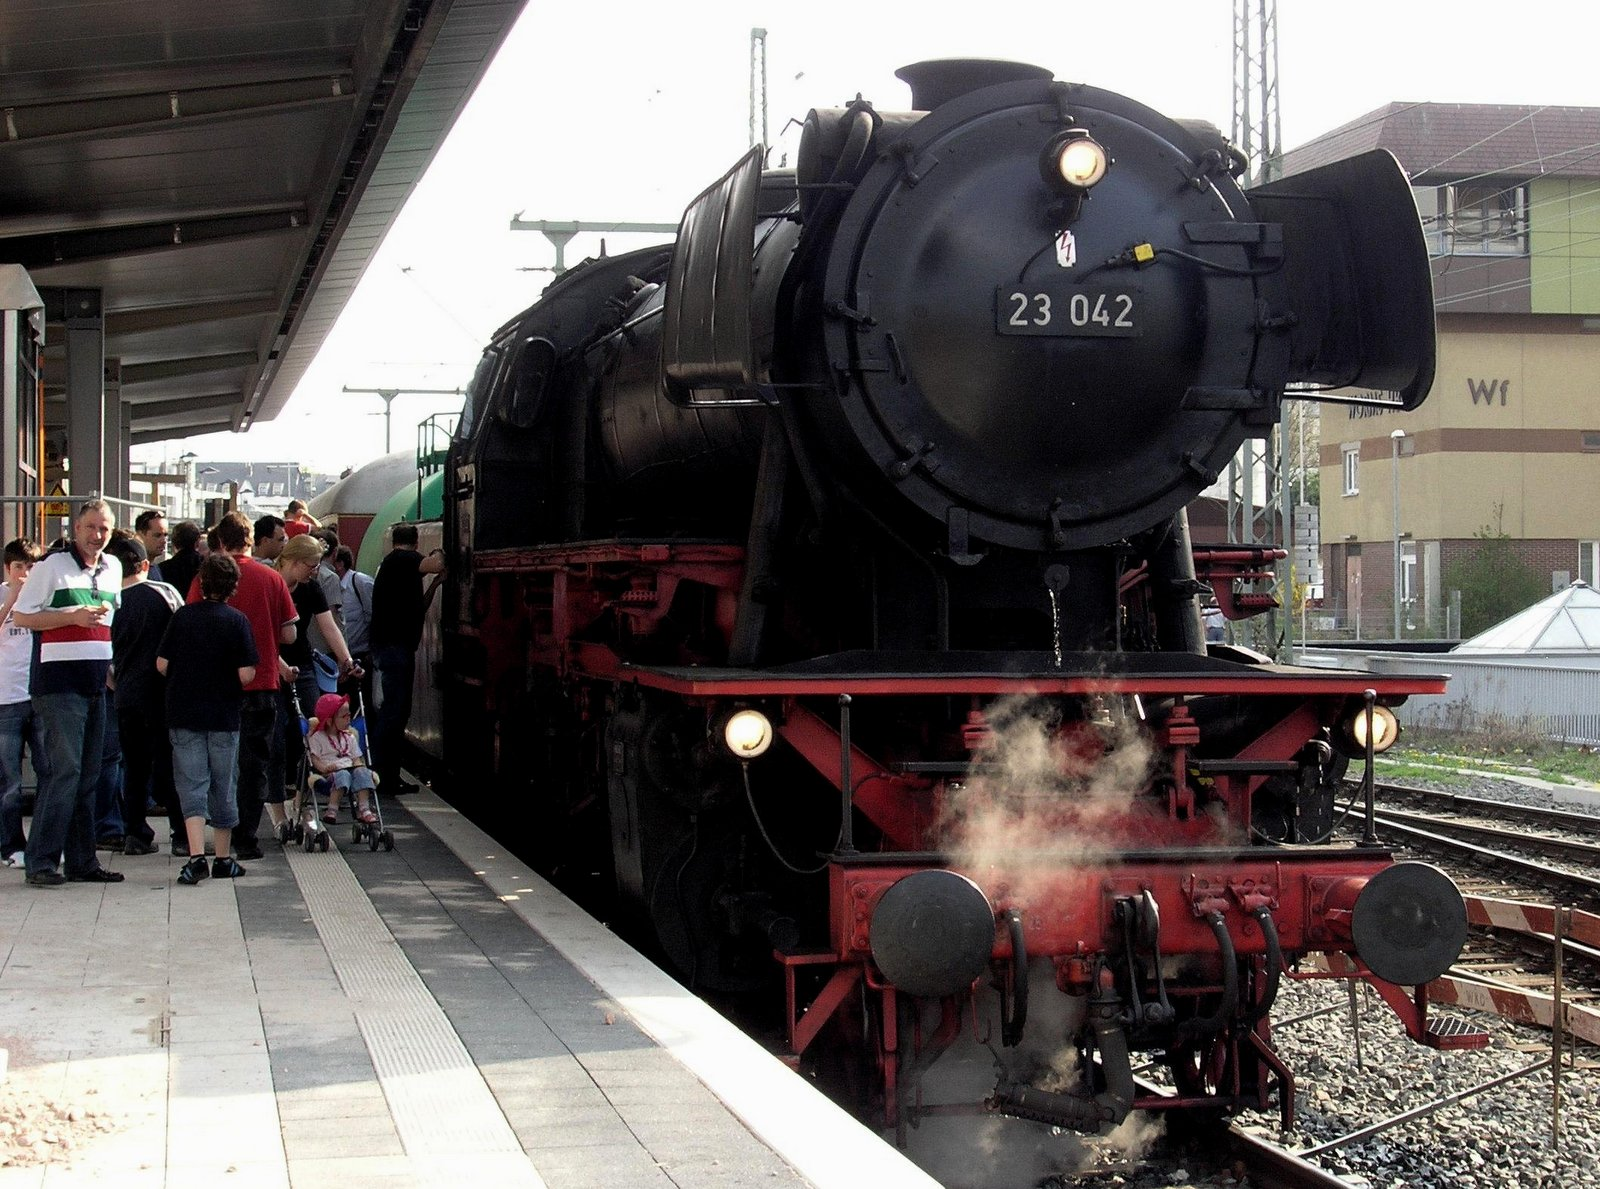 Dampflokomotive 23042 in Worms